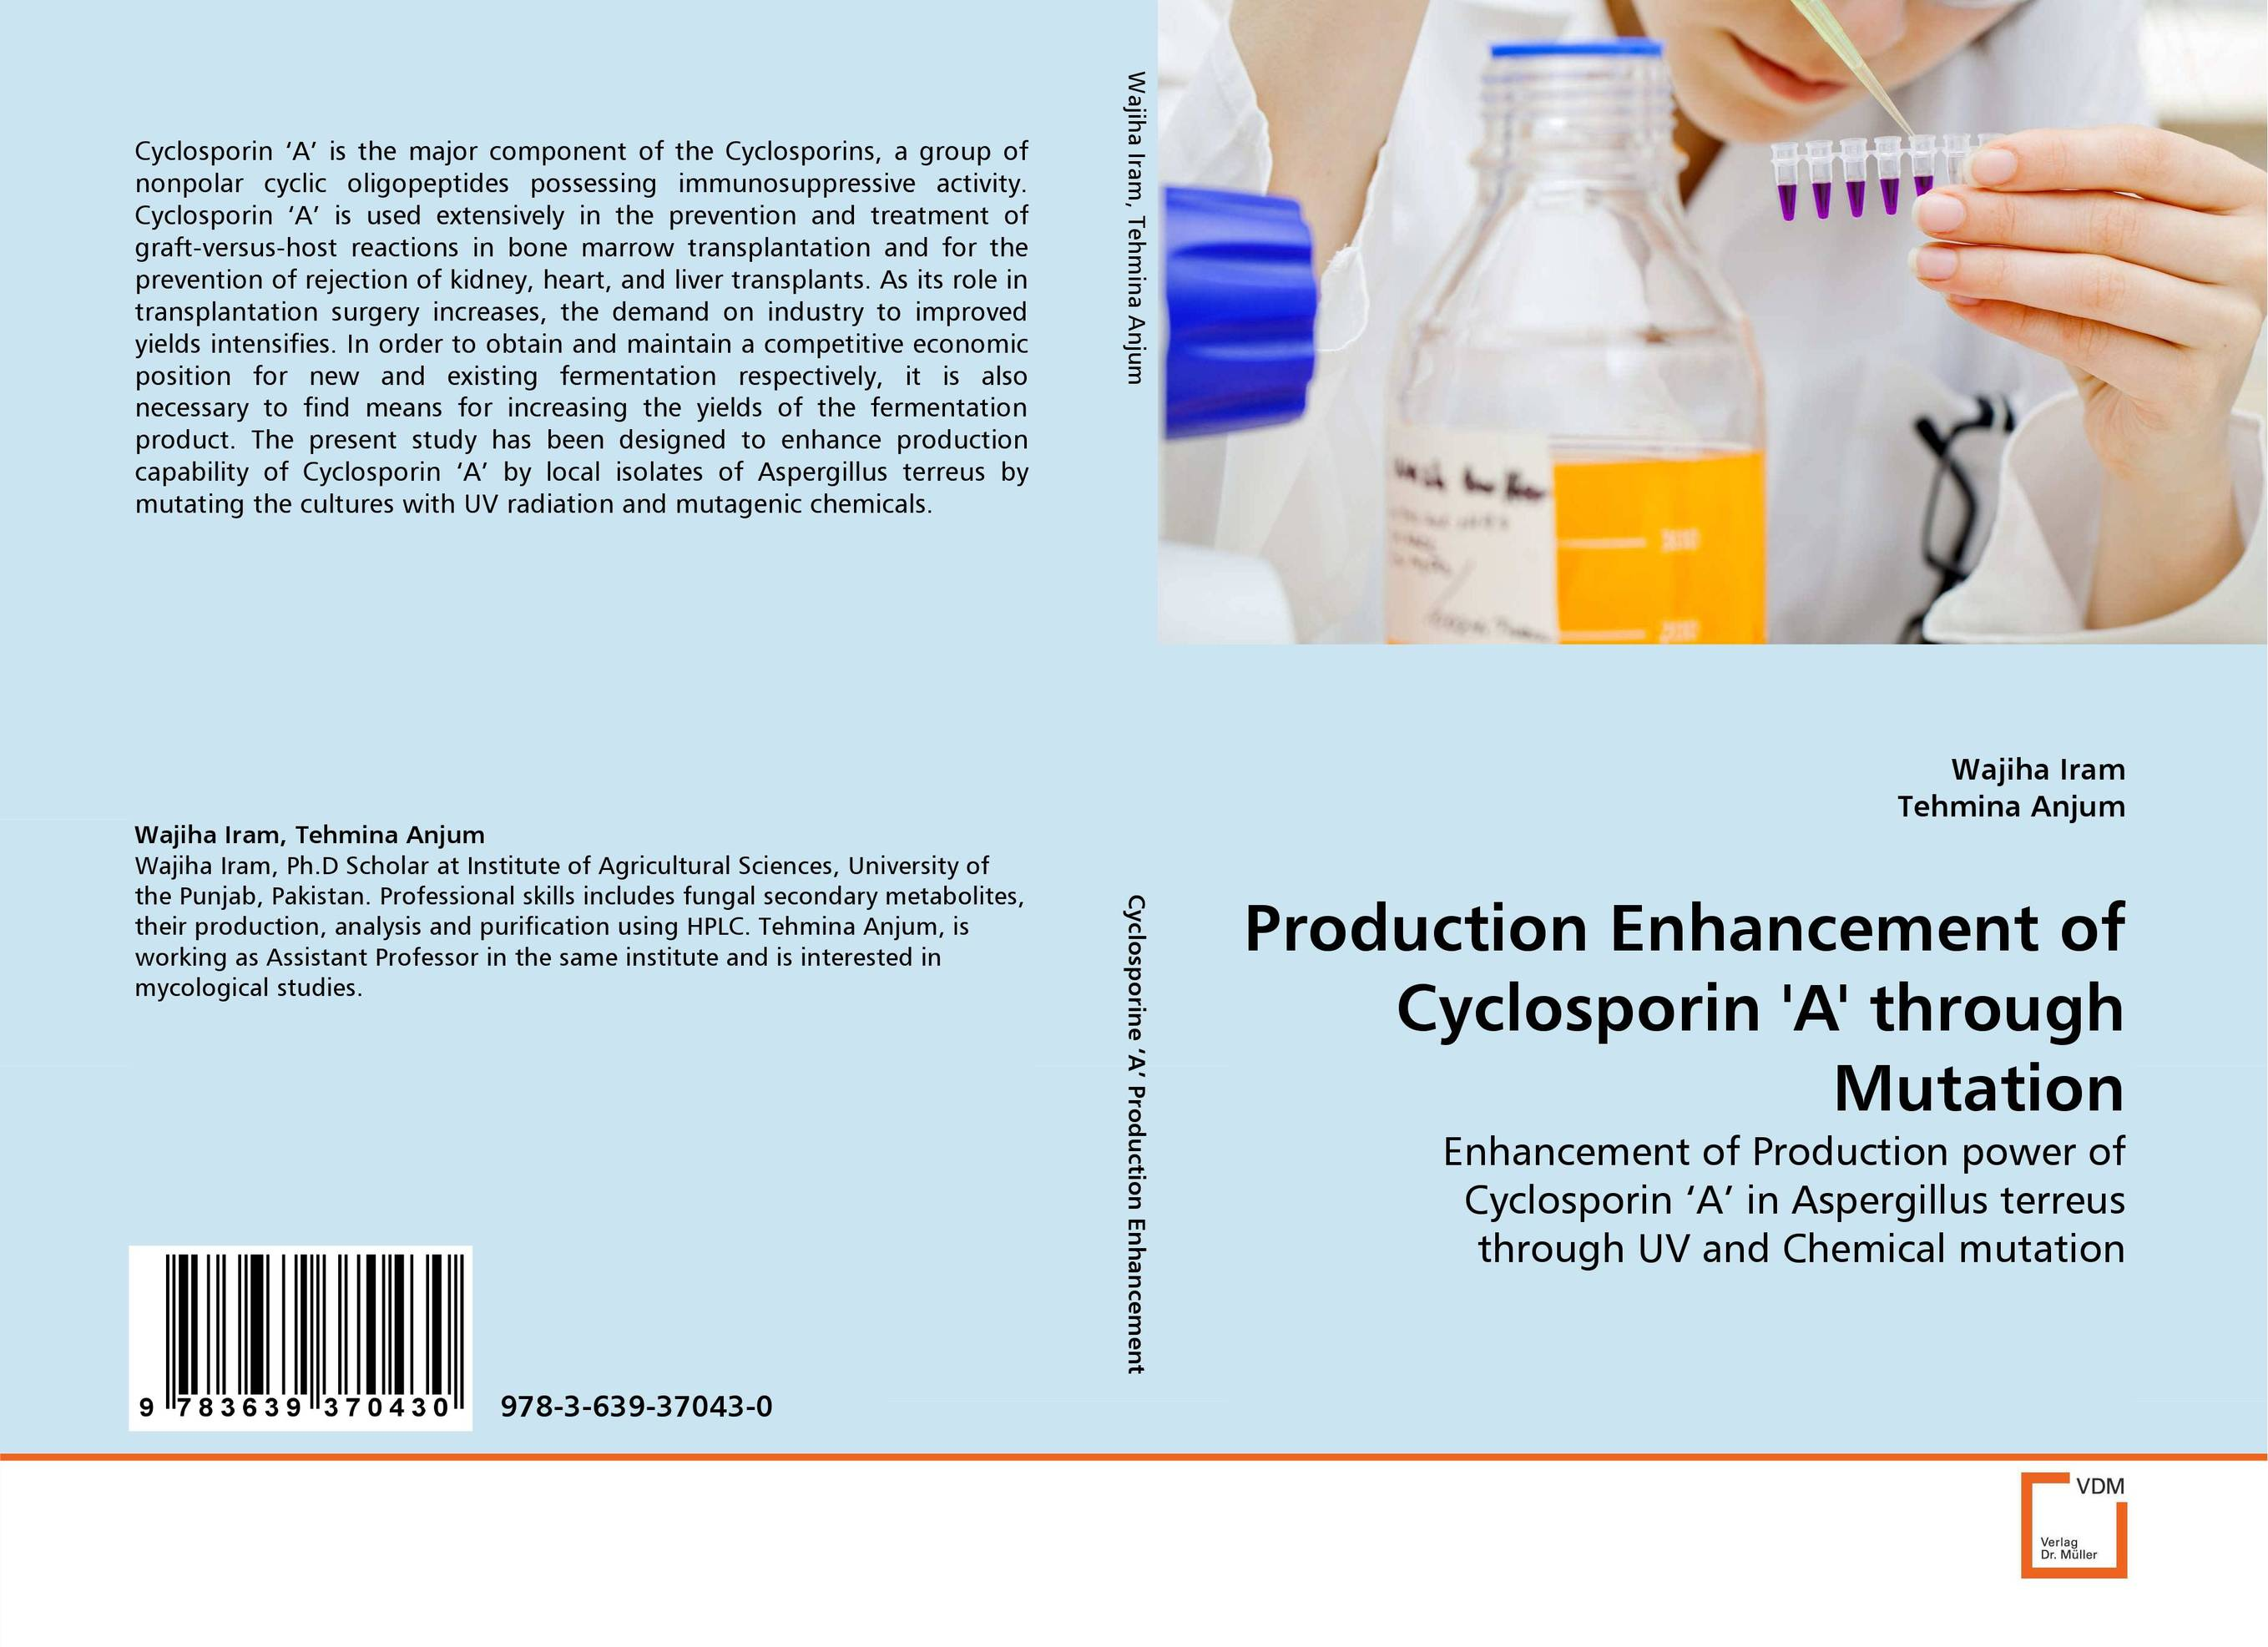 Production Enhancement of Cyclosporin ''A'' through Mutation adding value to the citrus pulp by enzyme biotechnology production